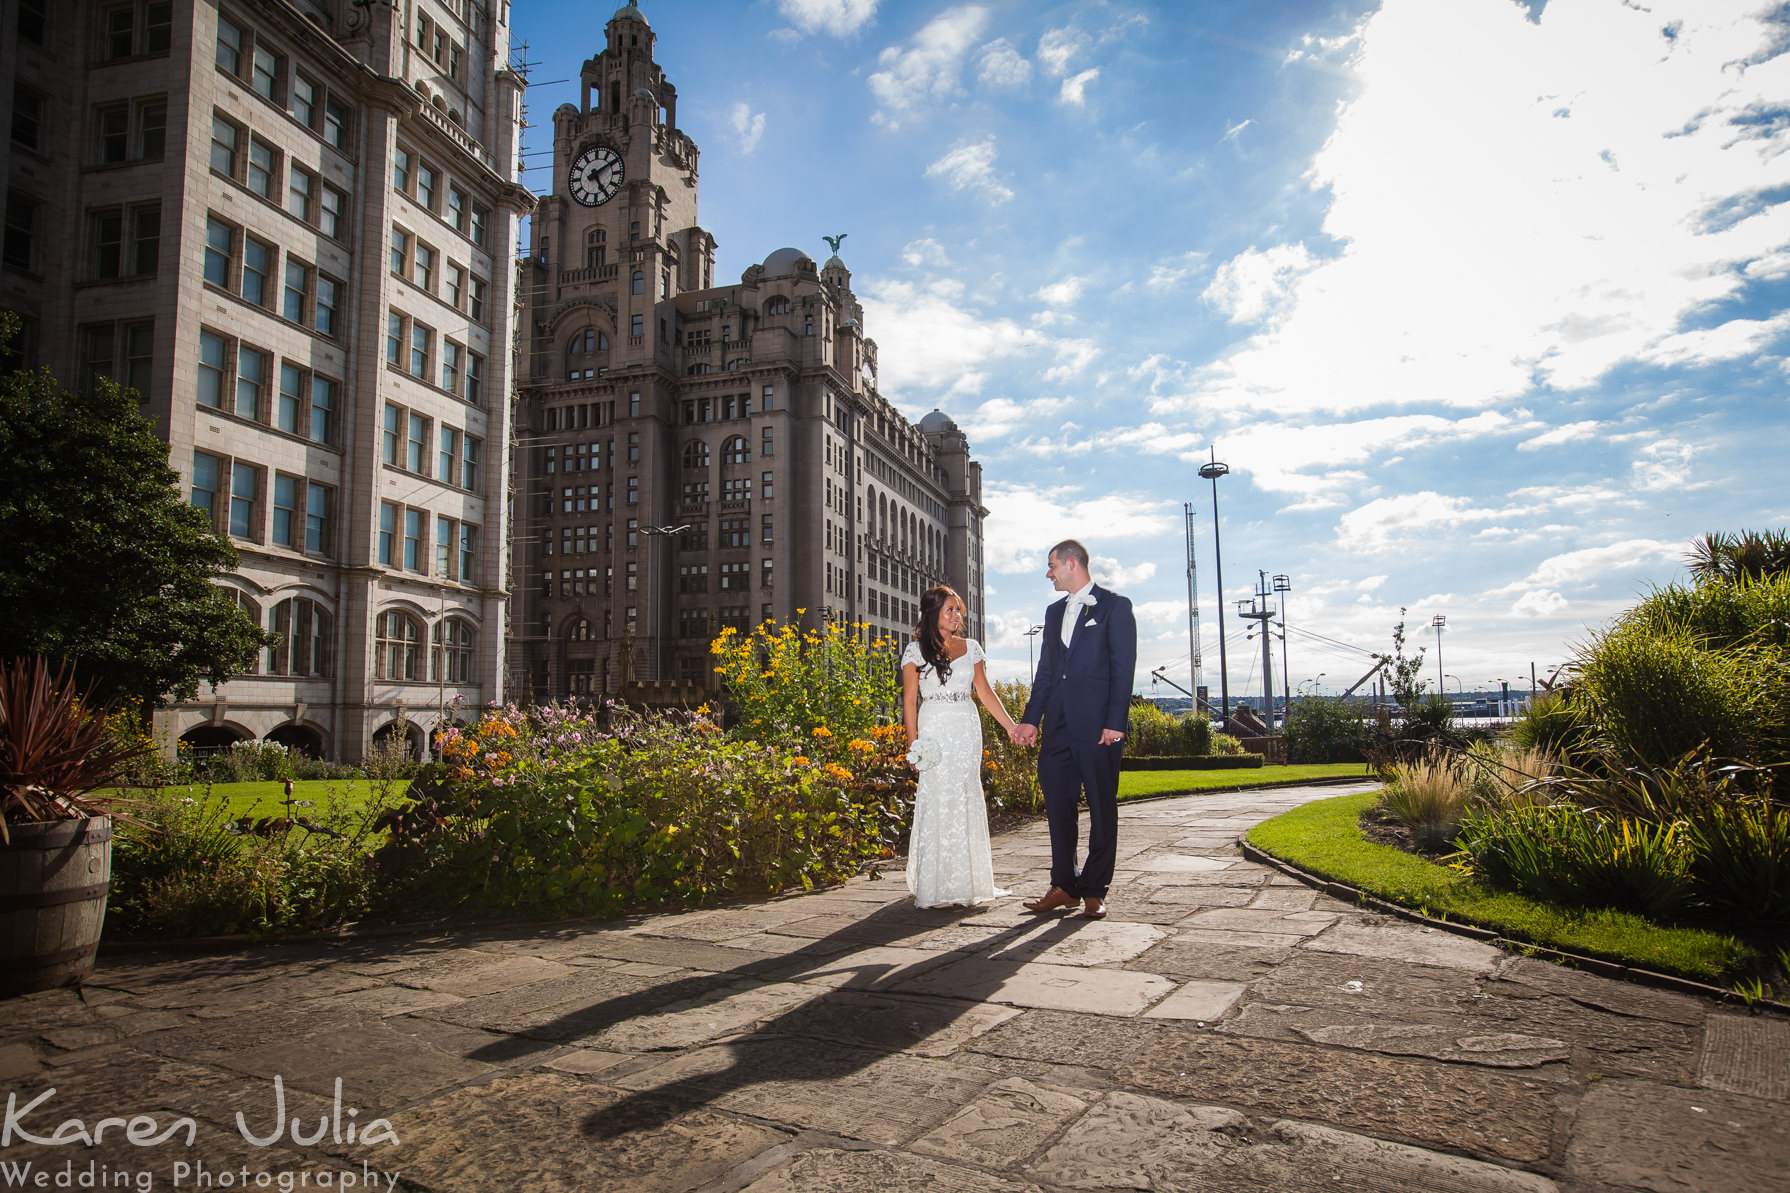 bride and groom walk through church gardens with Liver building in background